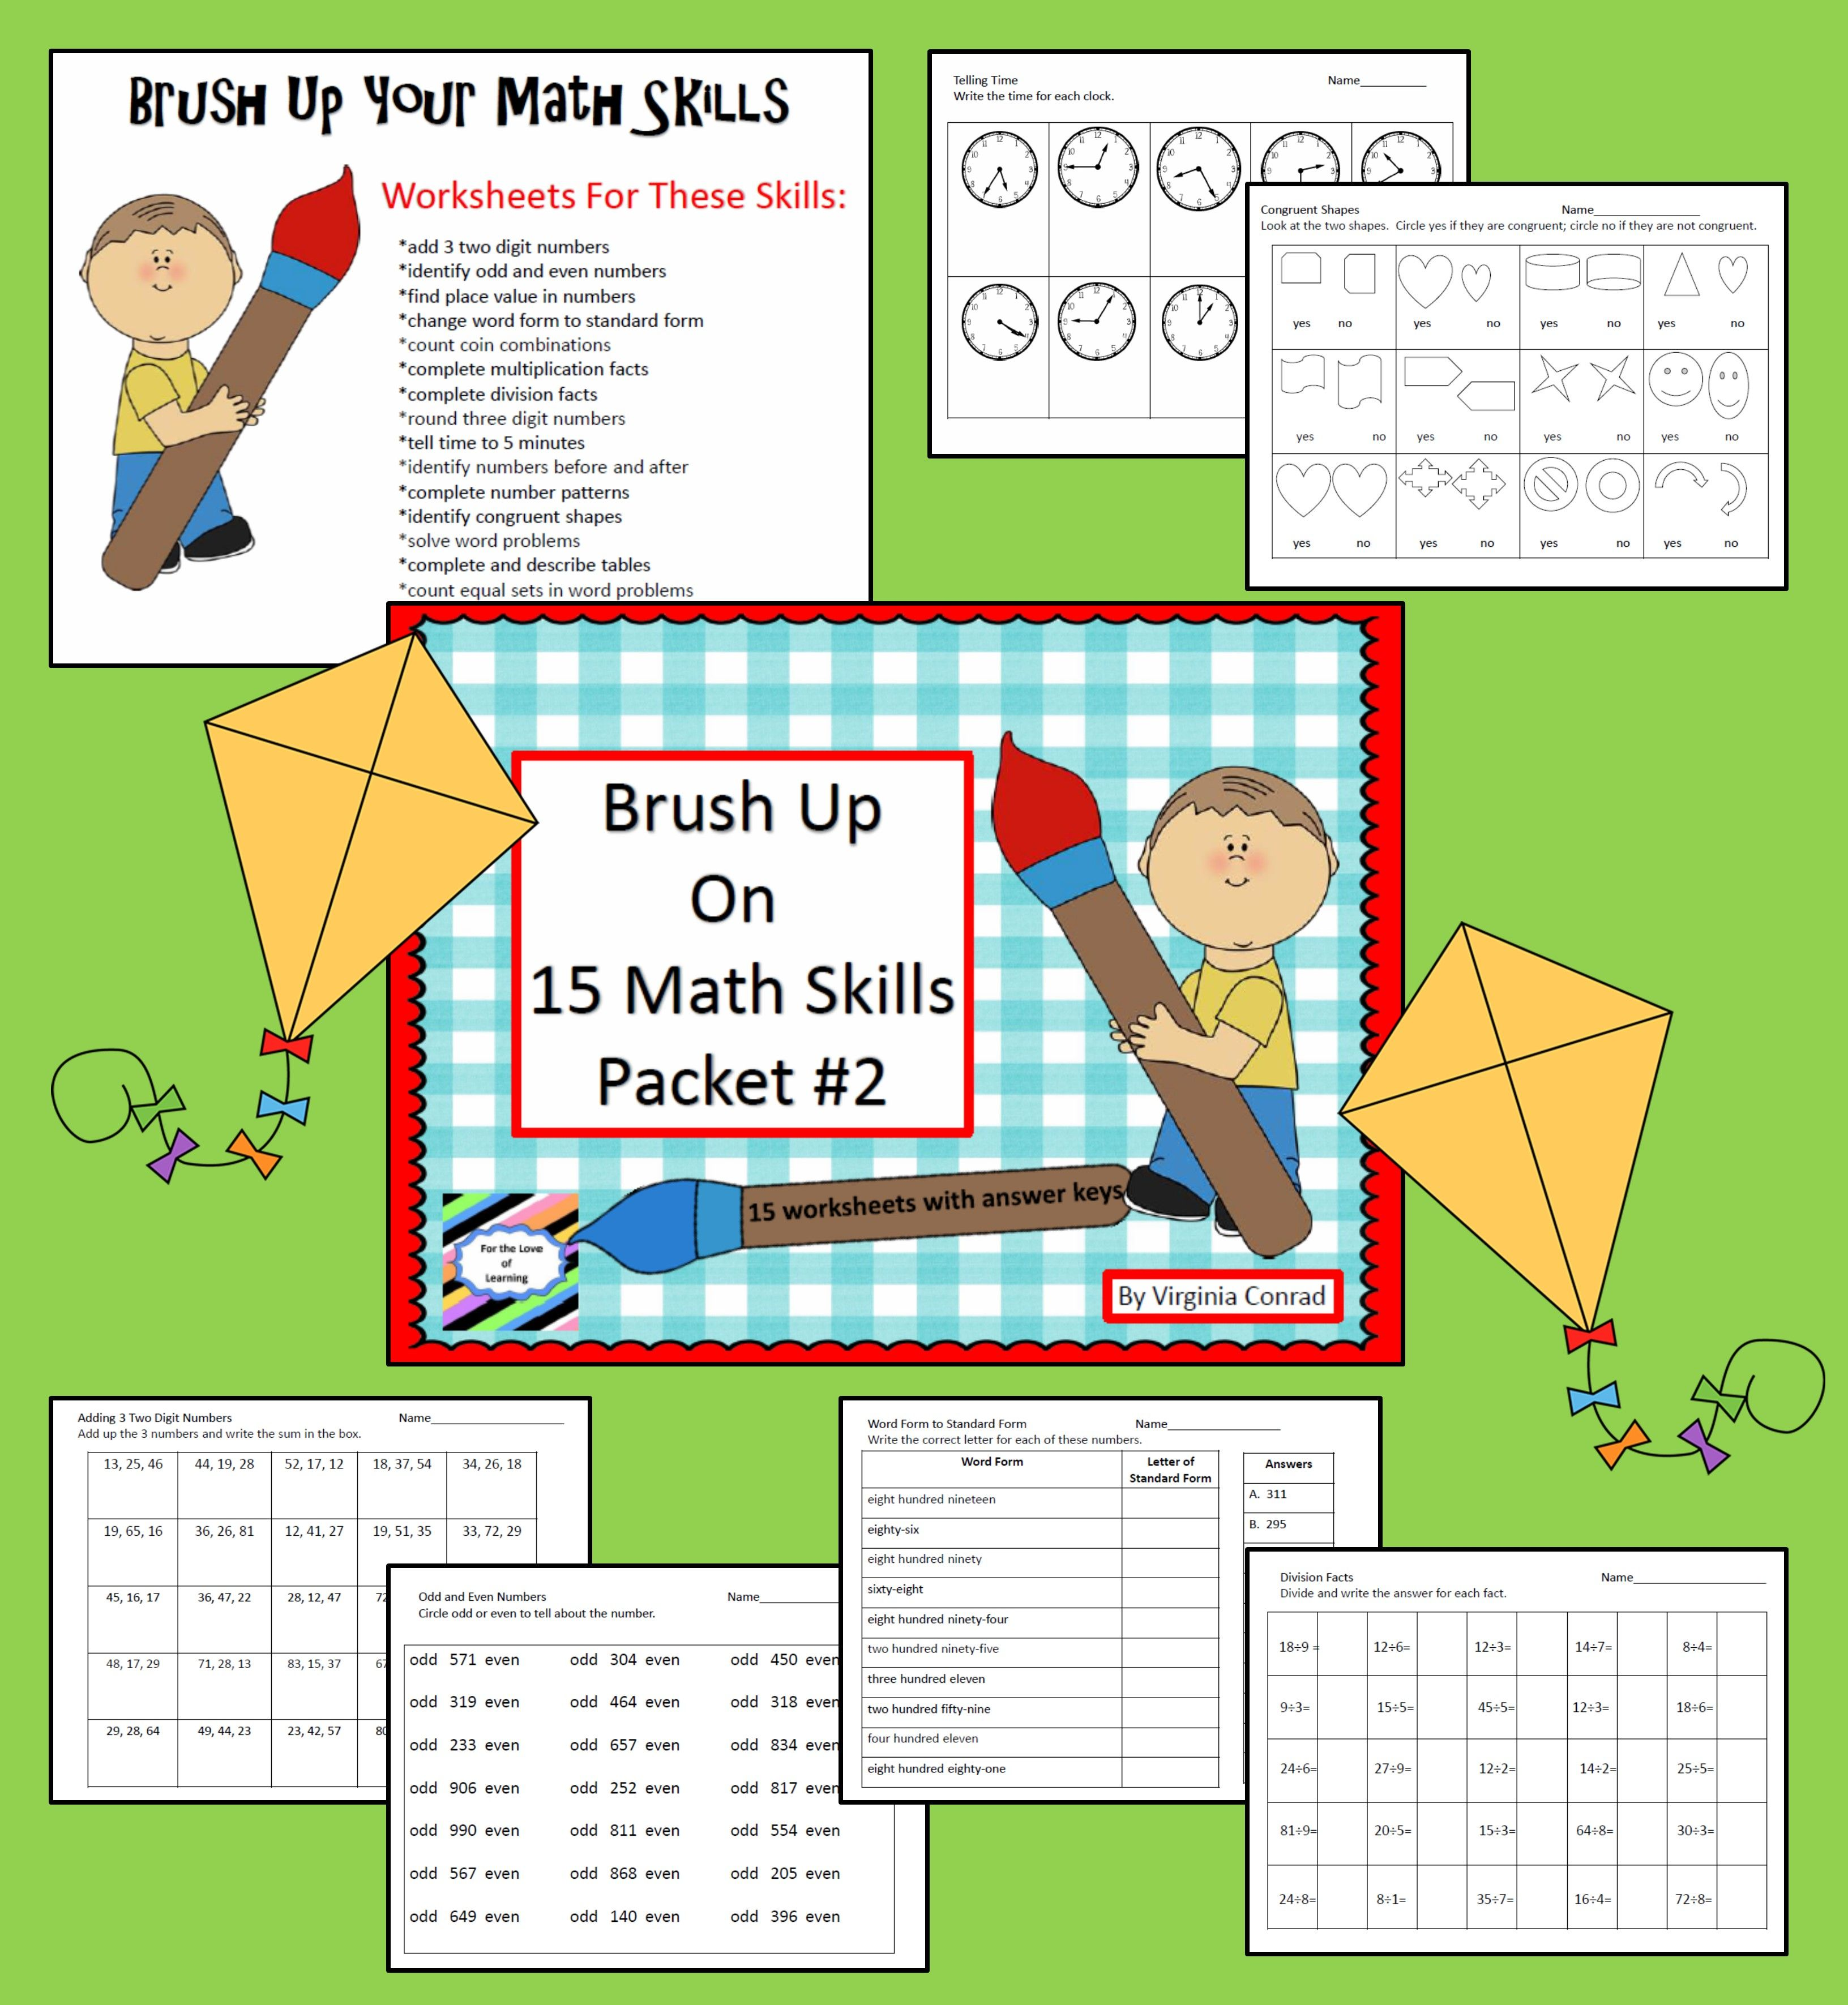 Brush Up Math Skills Packet 2